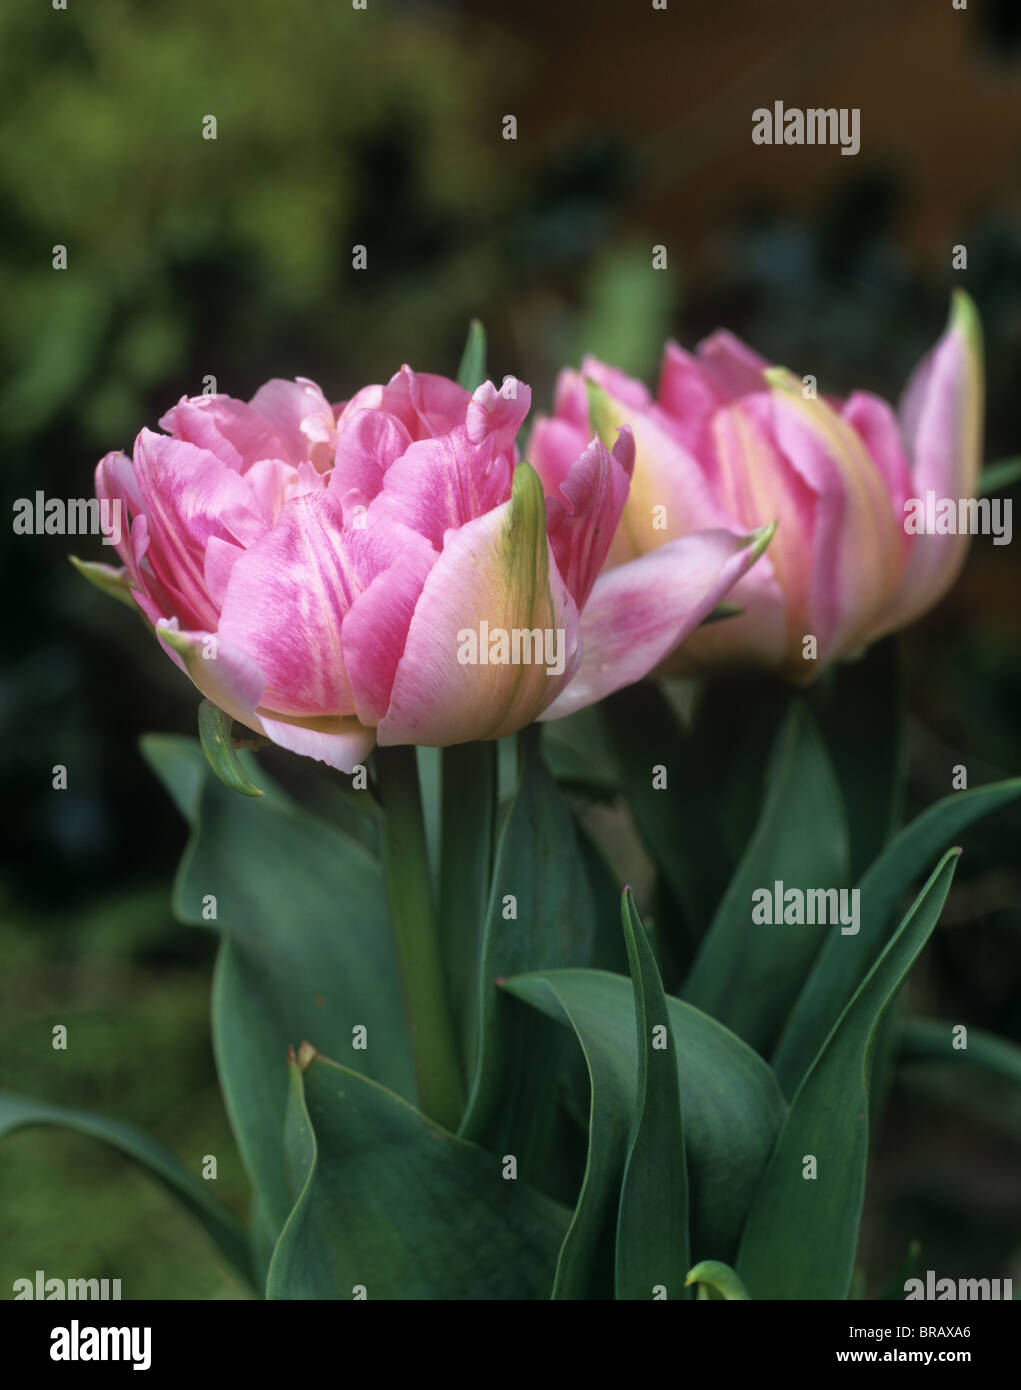 Flowers of Tulip 'Peach Blossom' - Stock Image